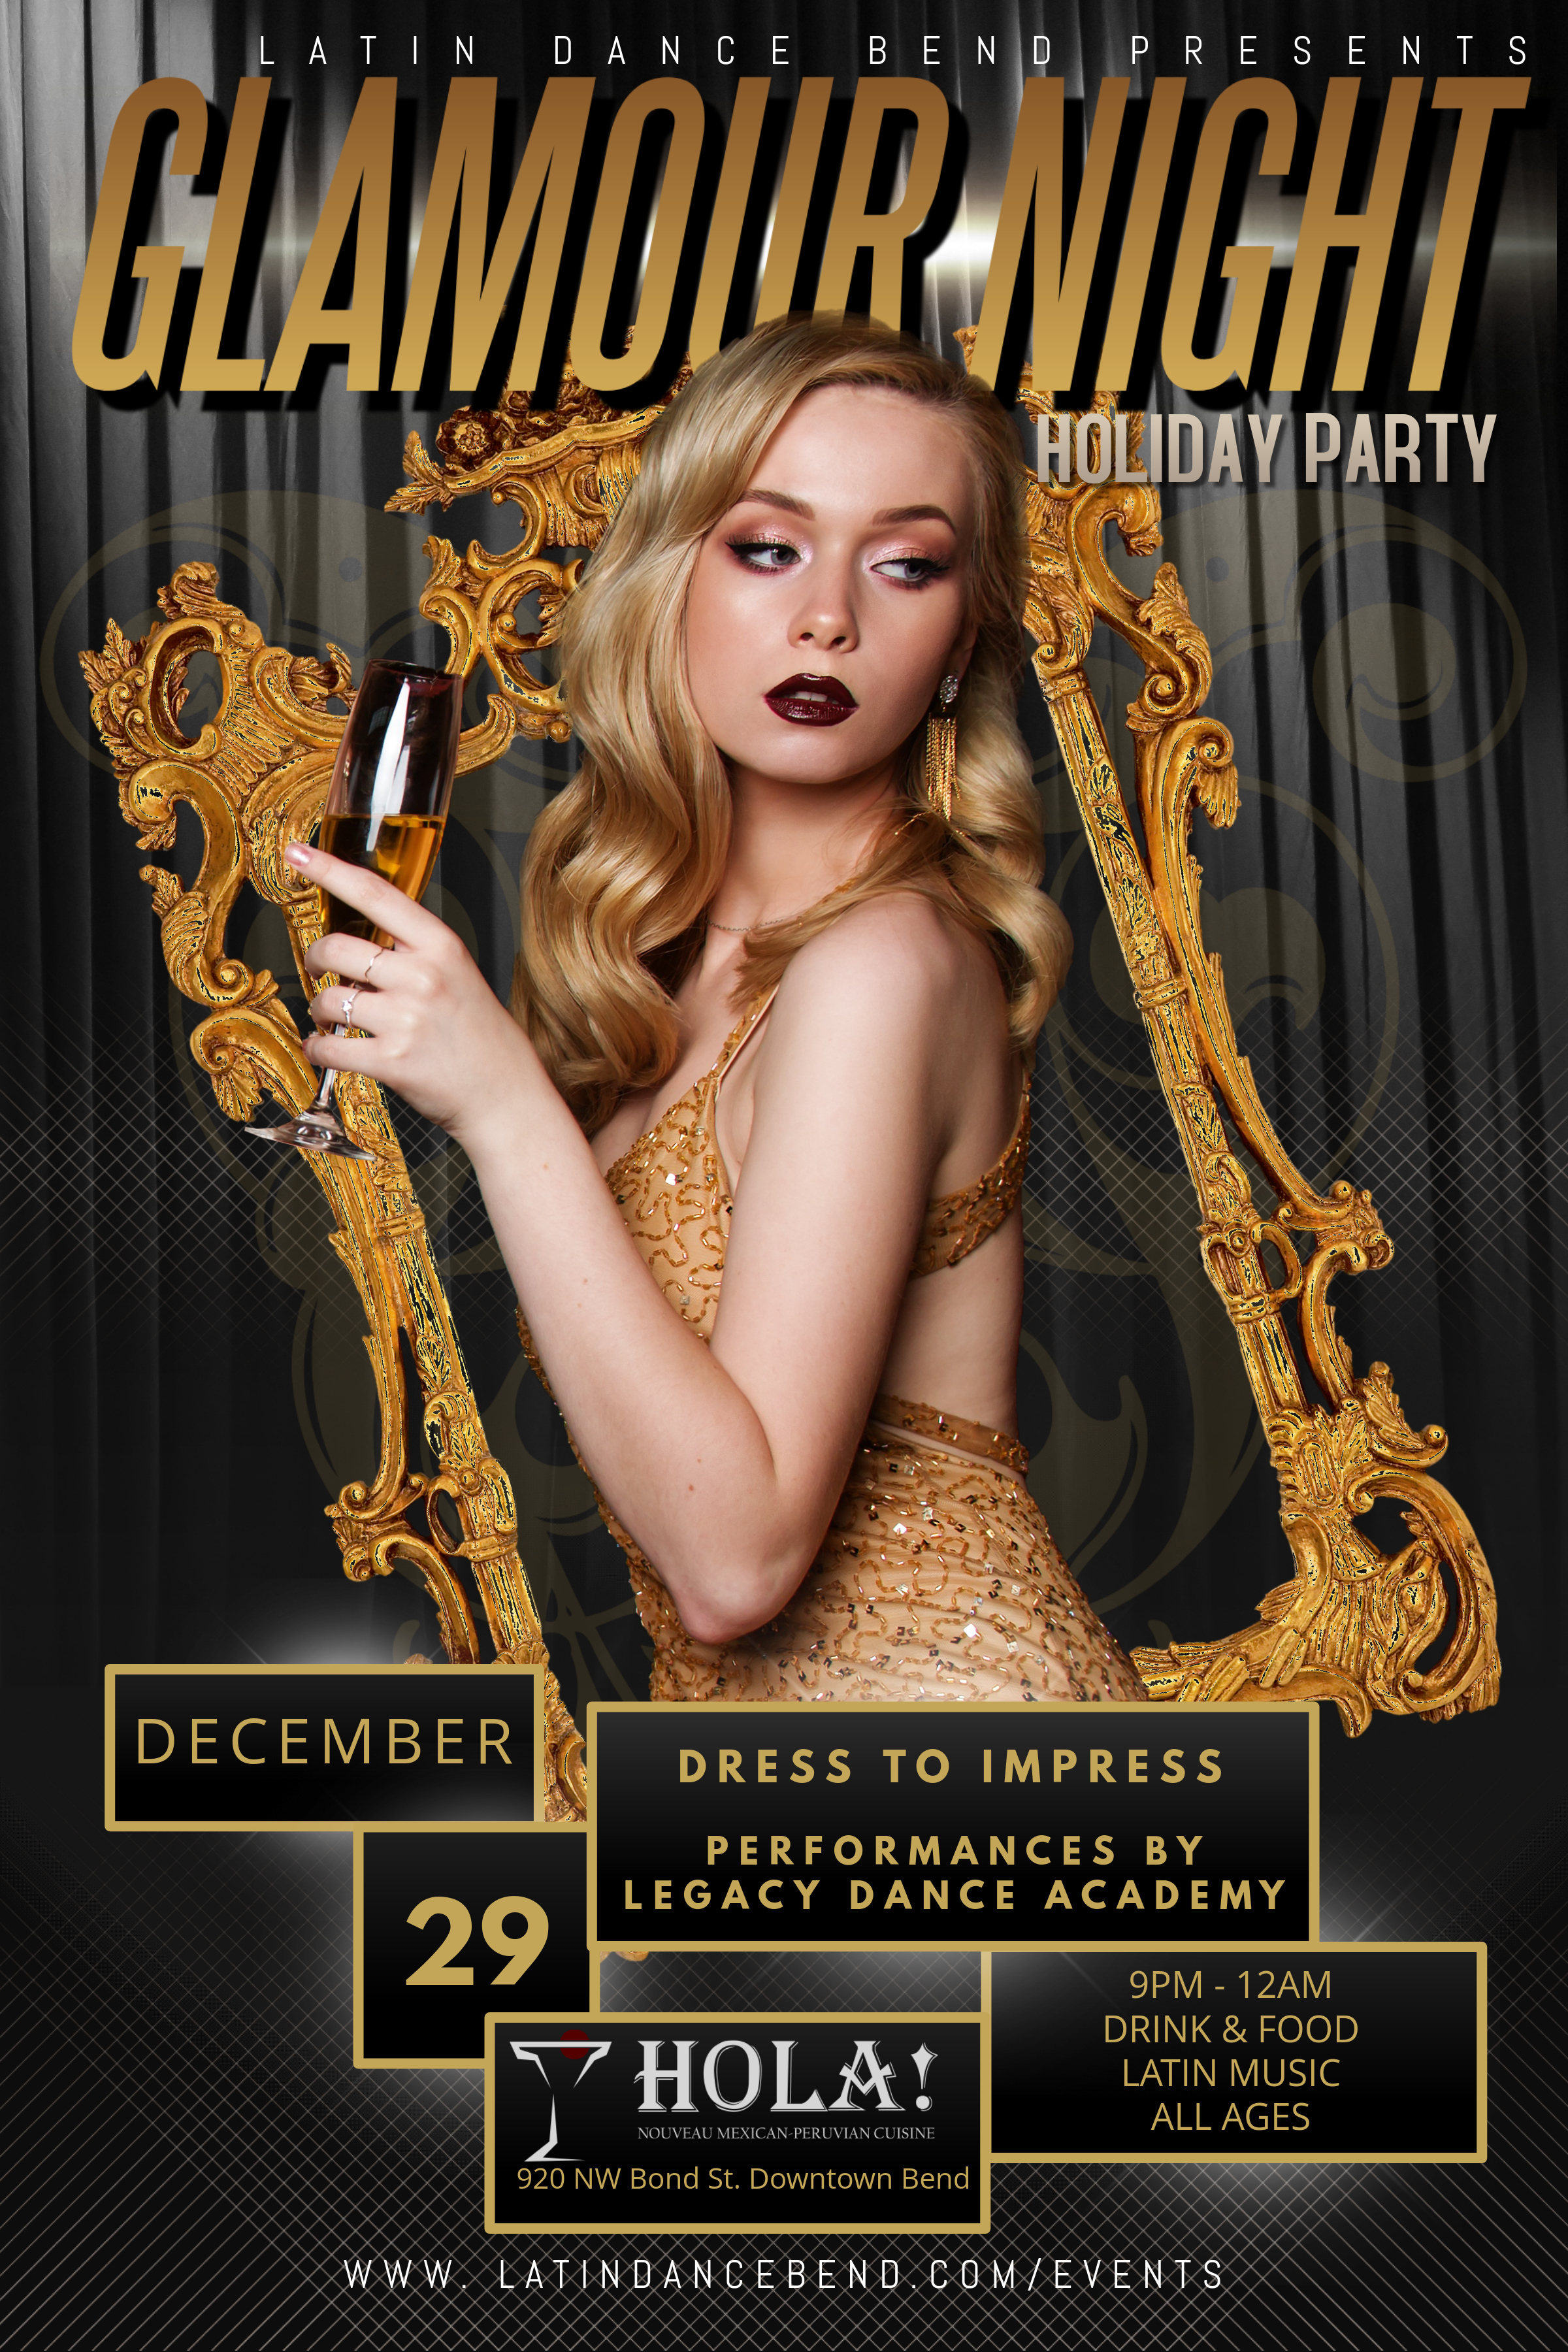 GlamourHolidayParty-Flyer.jpg